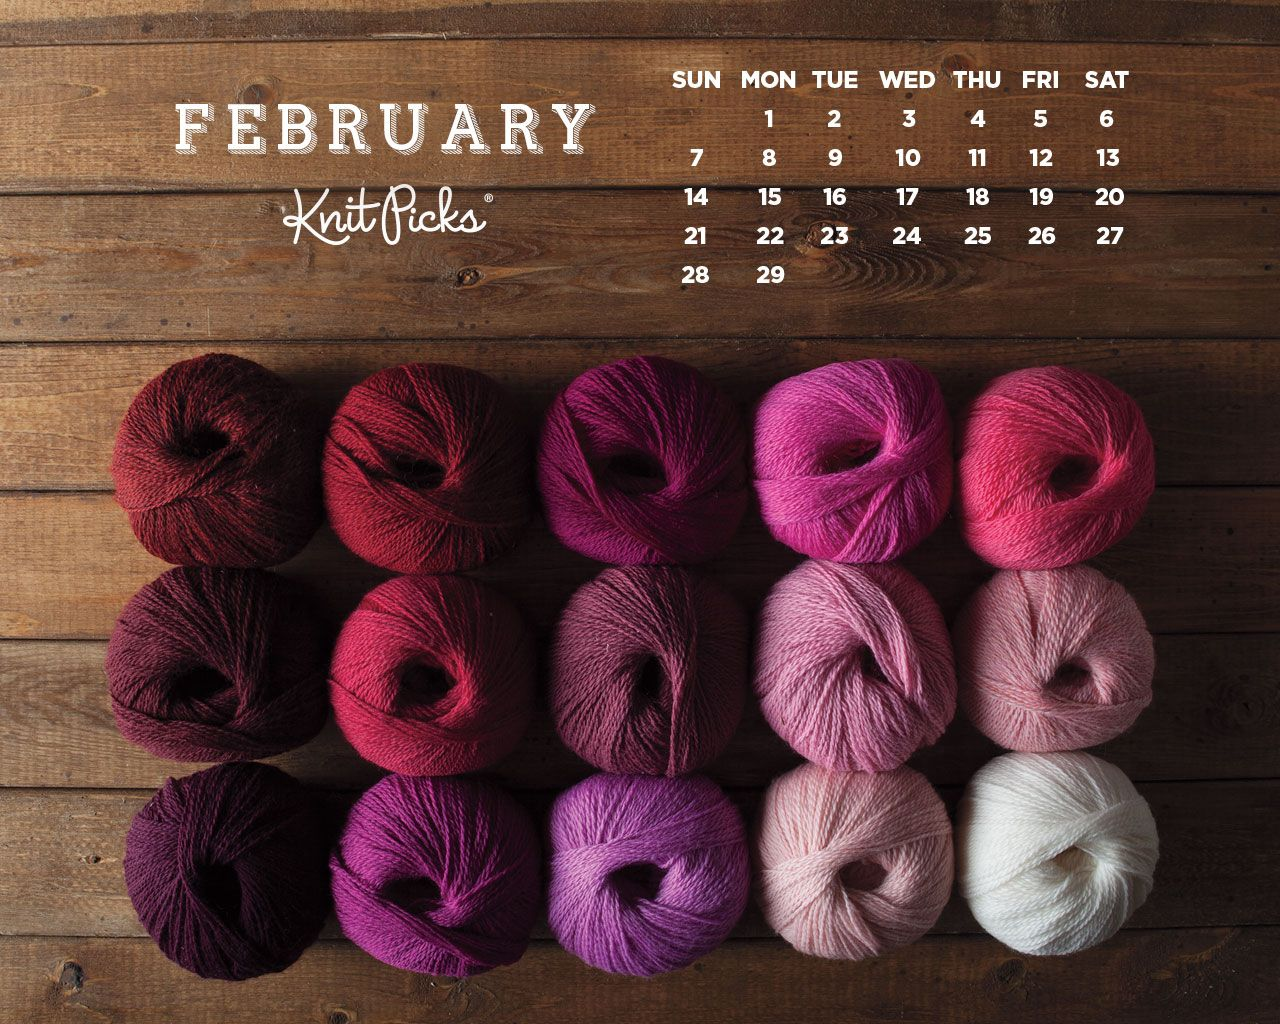 Knitting Desktop Background : Knit picks desktop wallpaper february 2016 needlework drawings